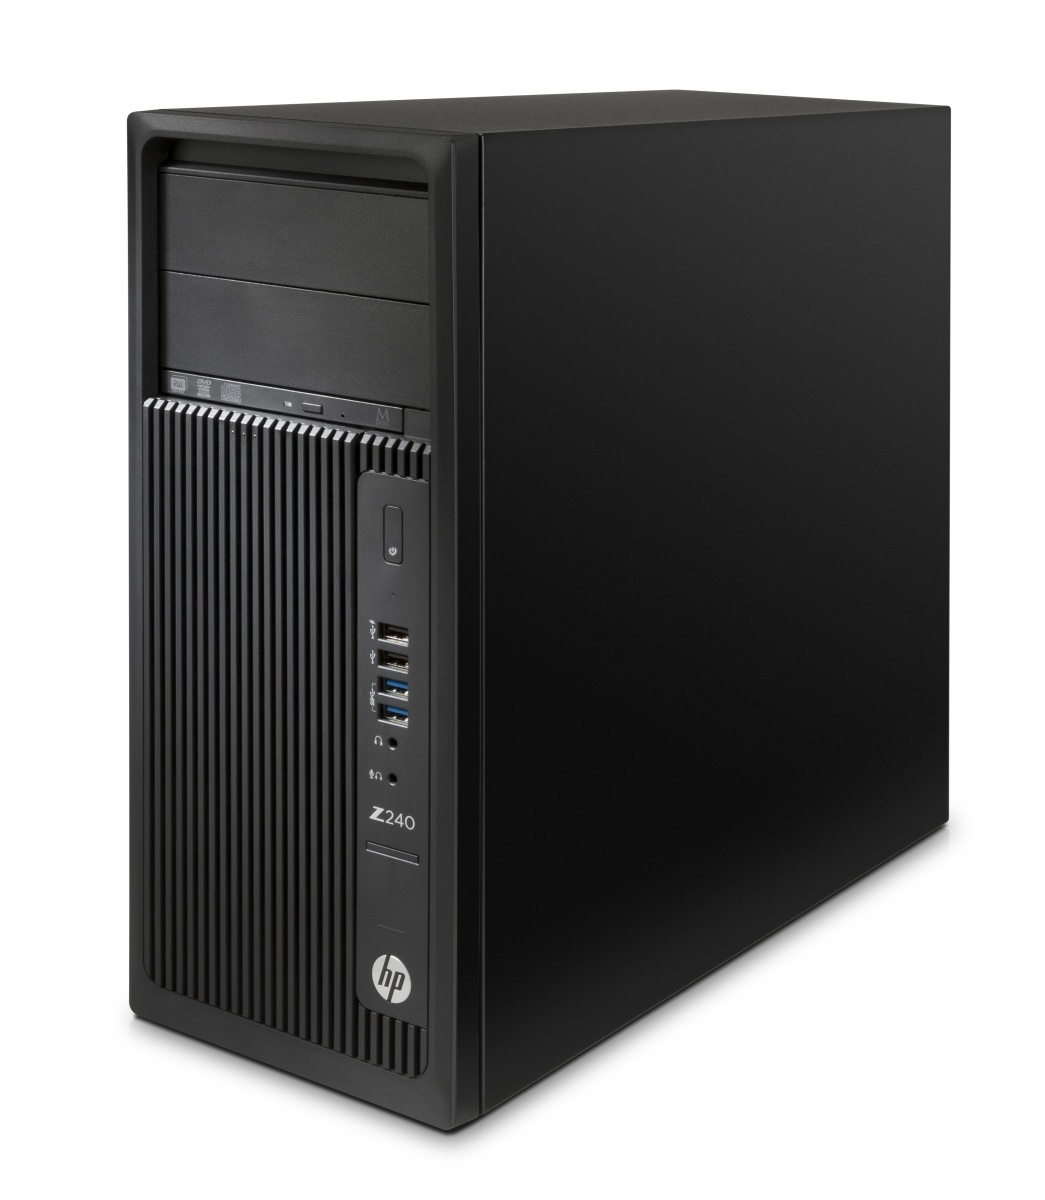 HP Z240 TWR E3-1240v5 3.5 GHz /16GB DDR4-2133 nECC (2x8GB)/2TB 7200/NVIDIA Quadro M2000 4GB 4xDP /Win 10 Pro